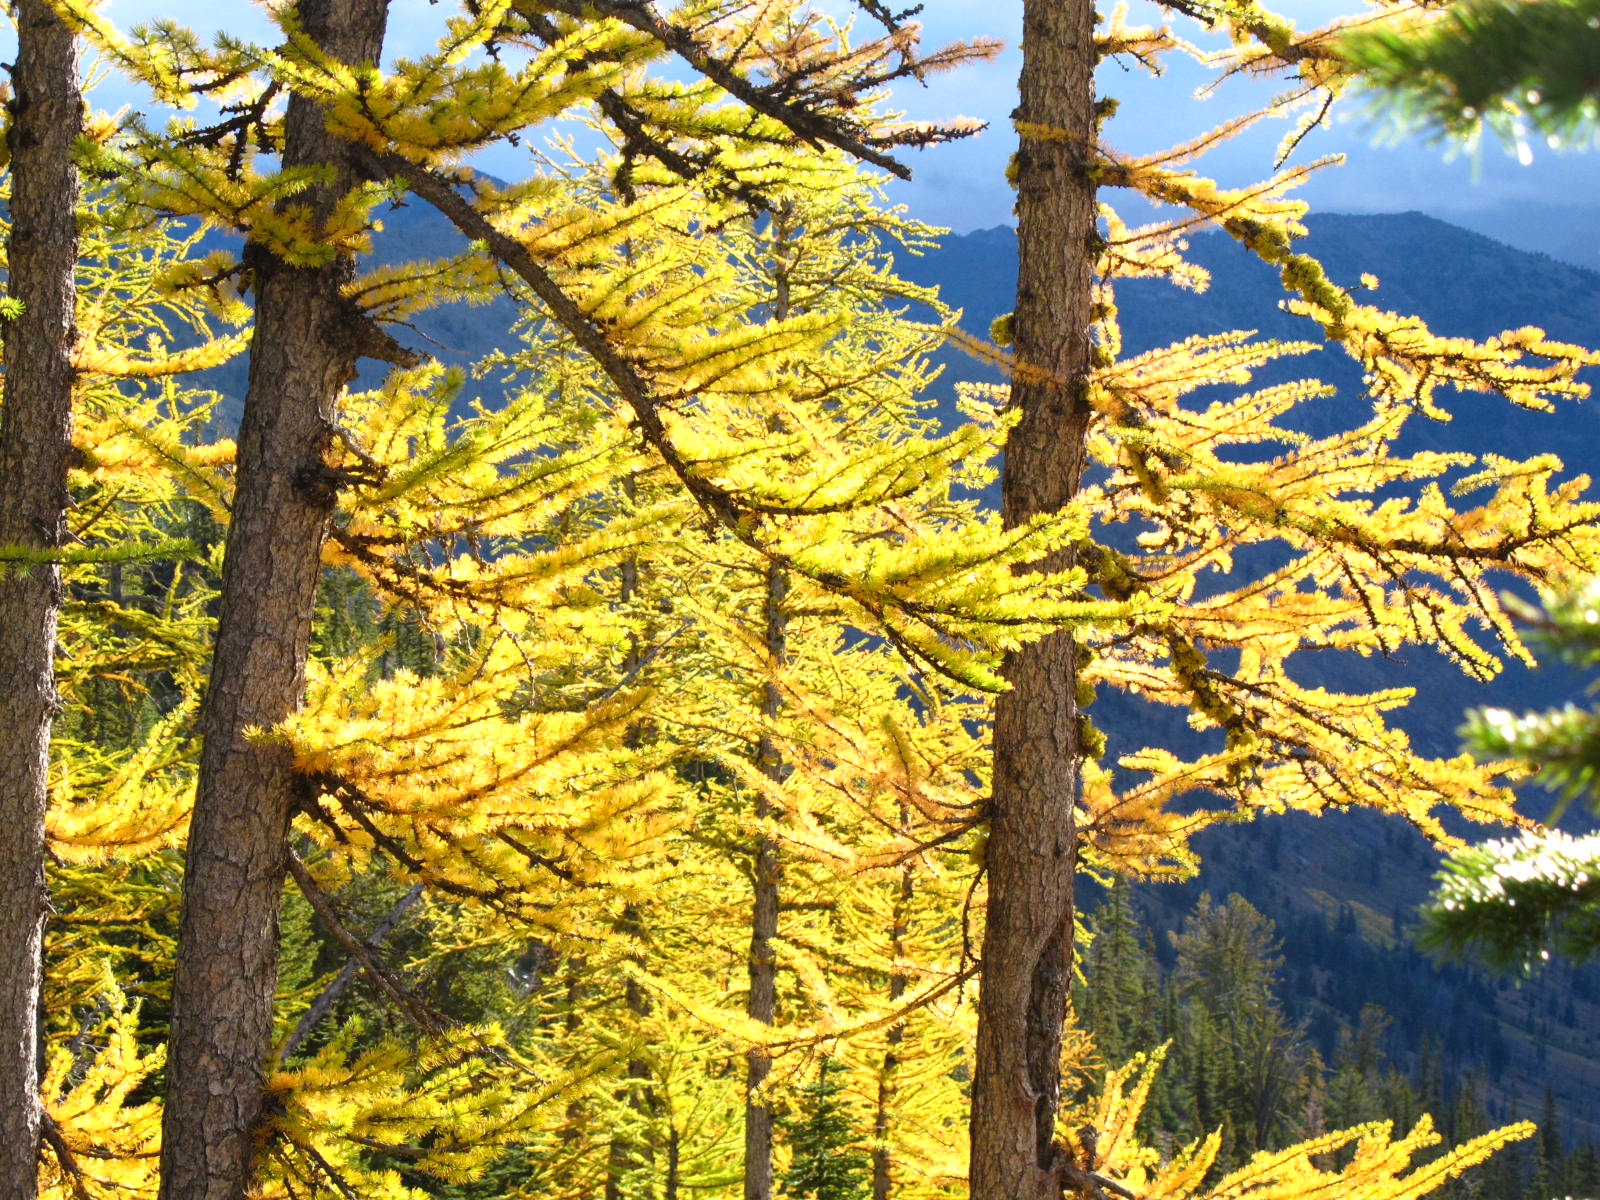 Image of alpine larch with stormy background, Harts Pass, Washington